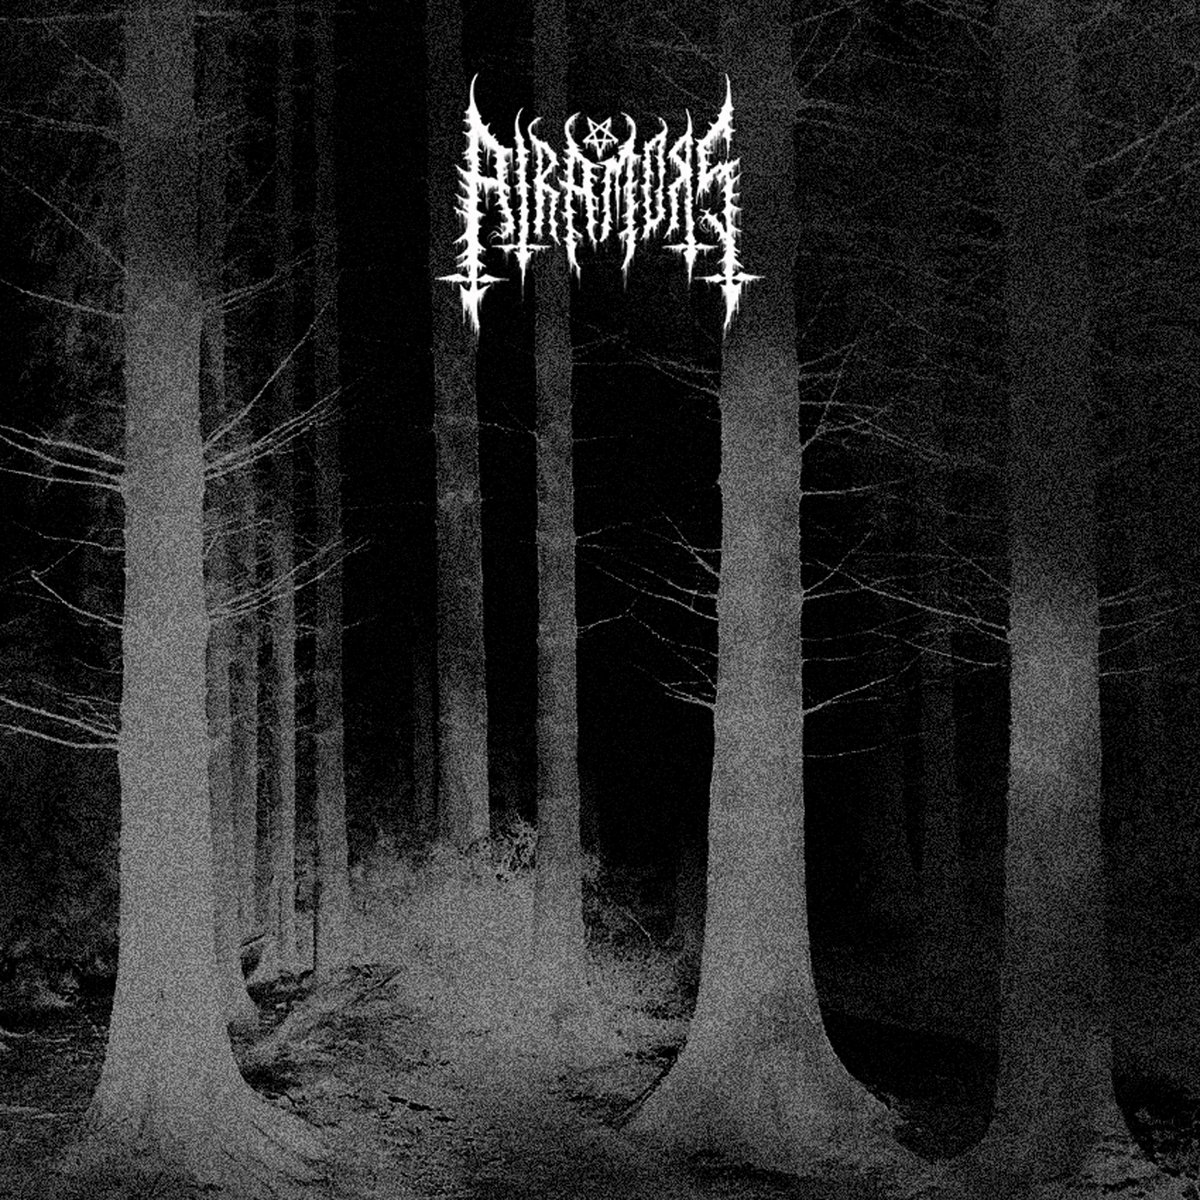 atra mors – dominate upon the throne of might